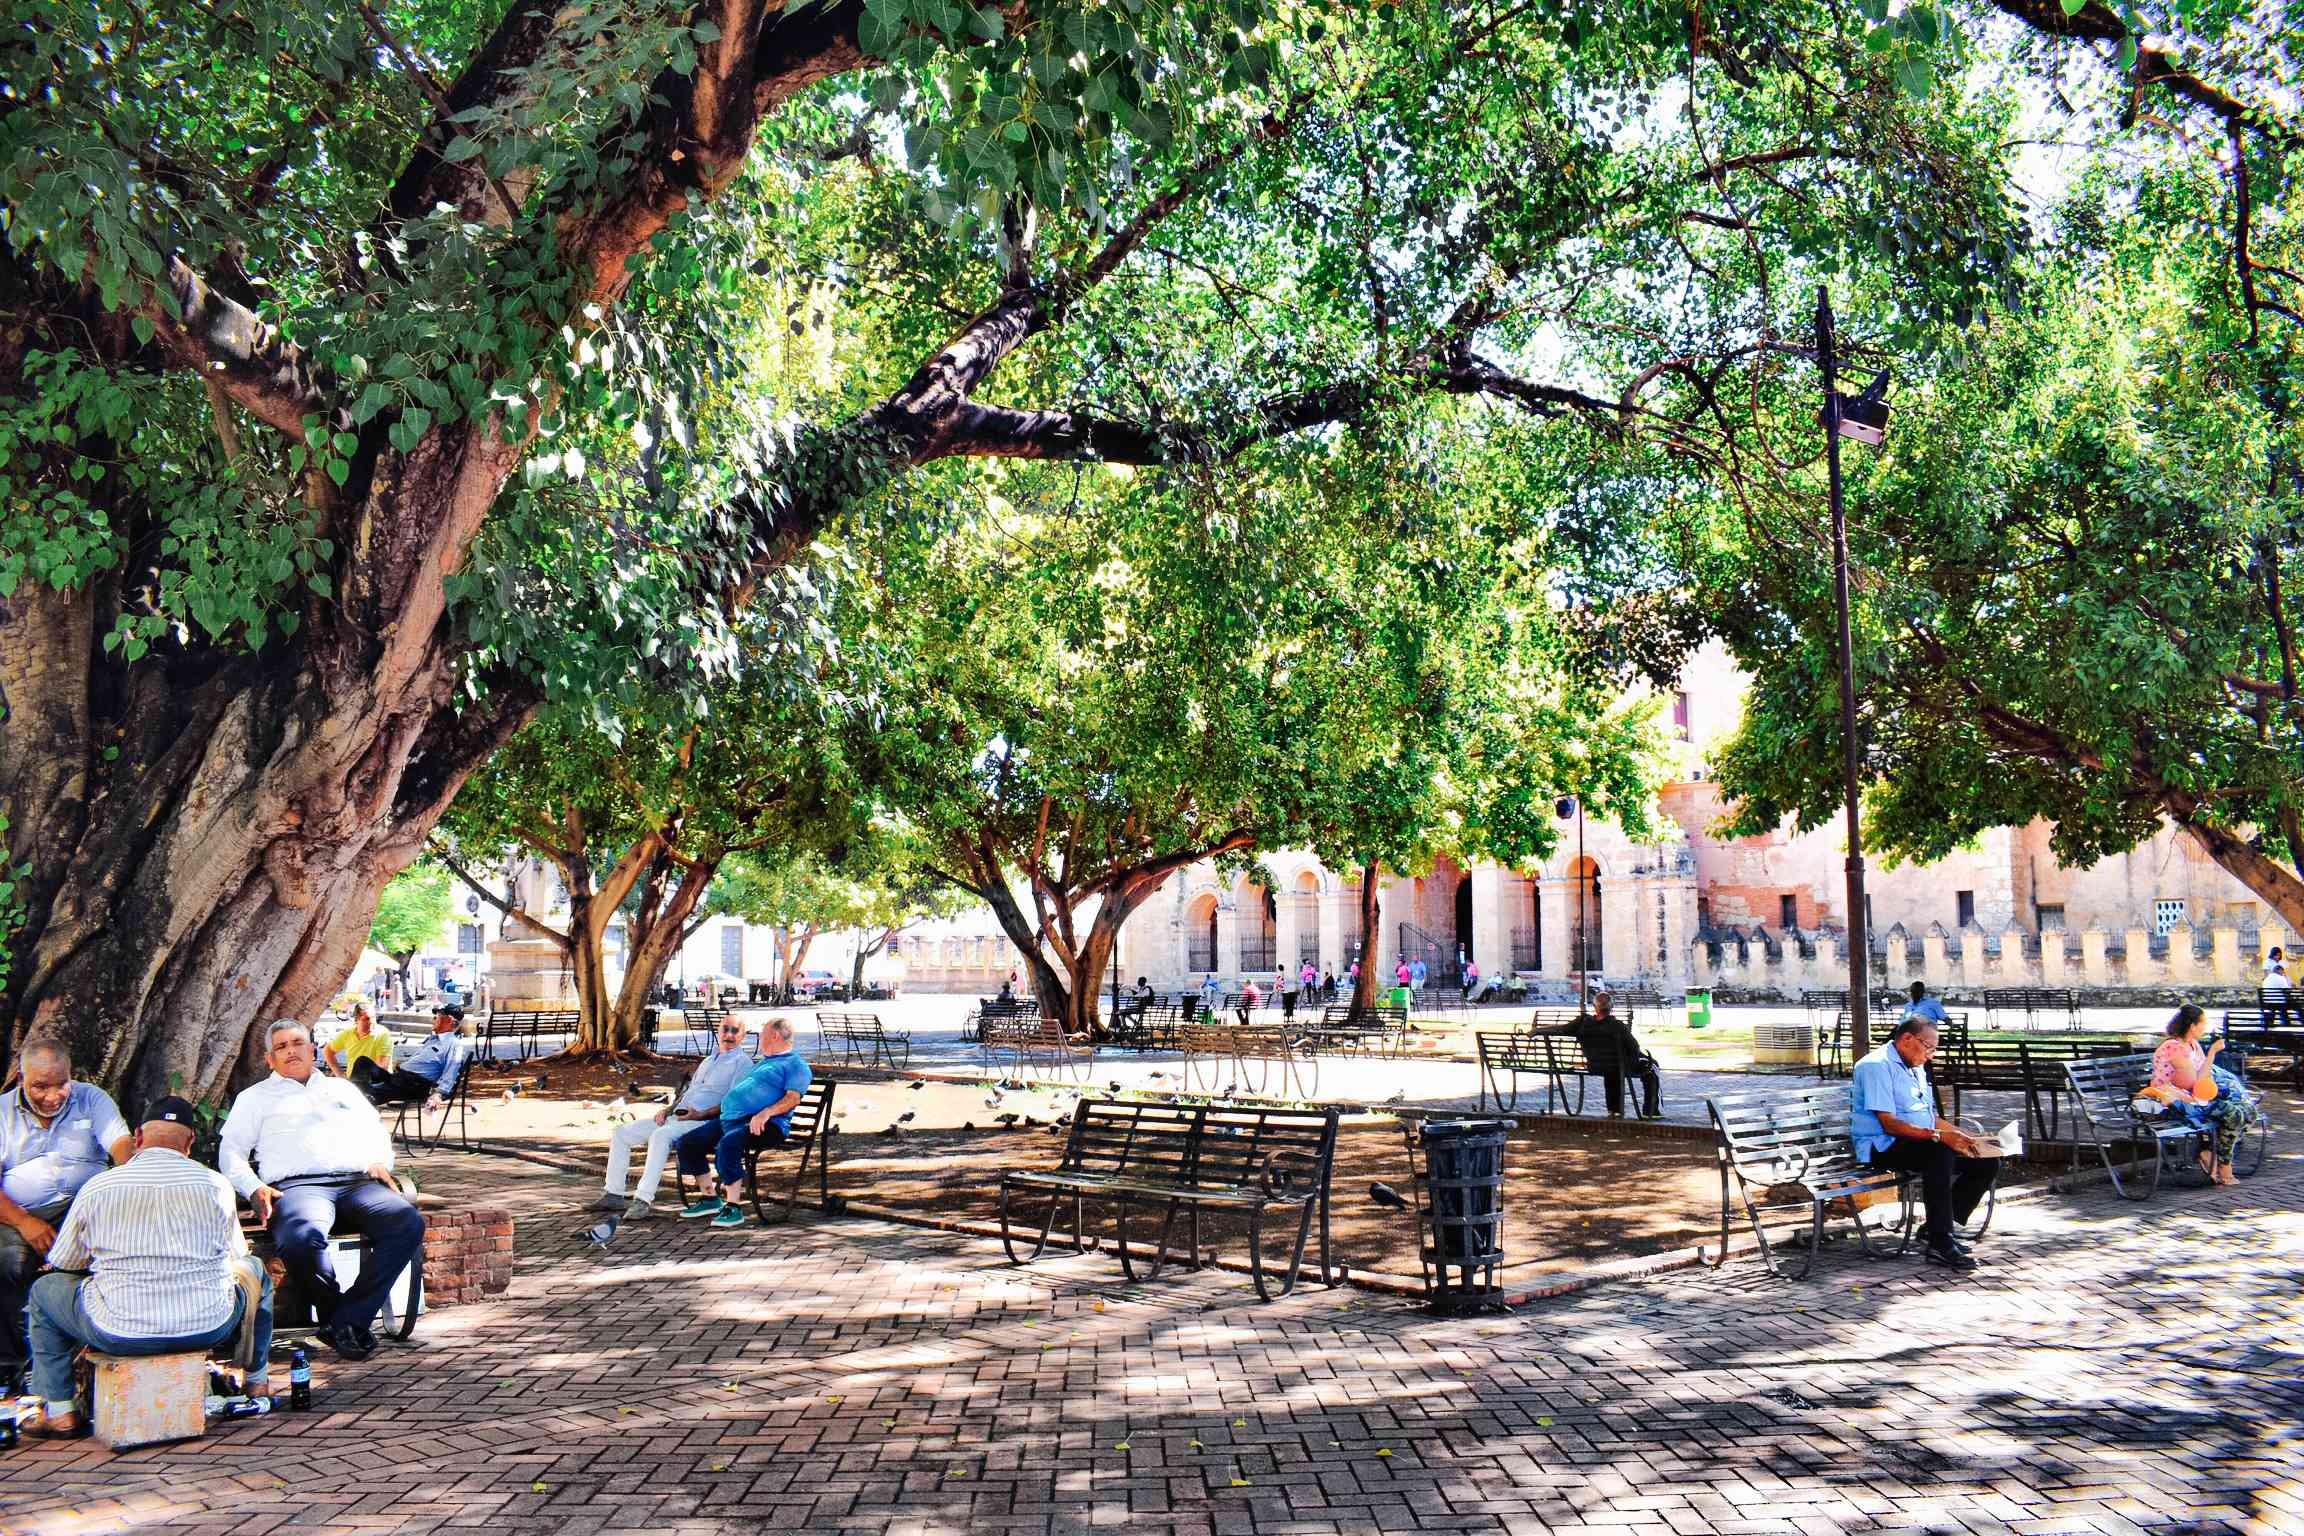 People sitting in a shaded courtyard in Parque Colon